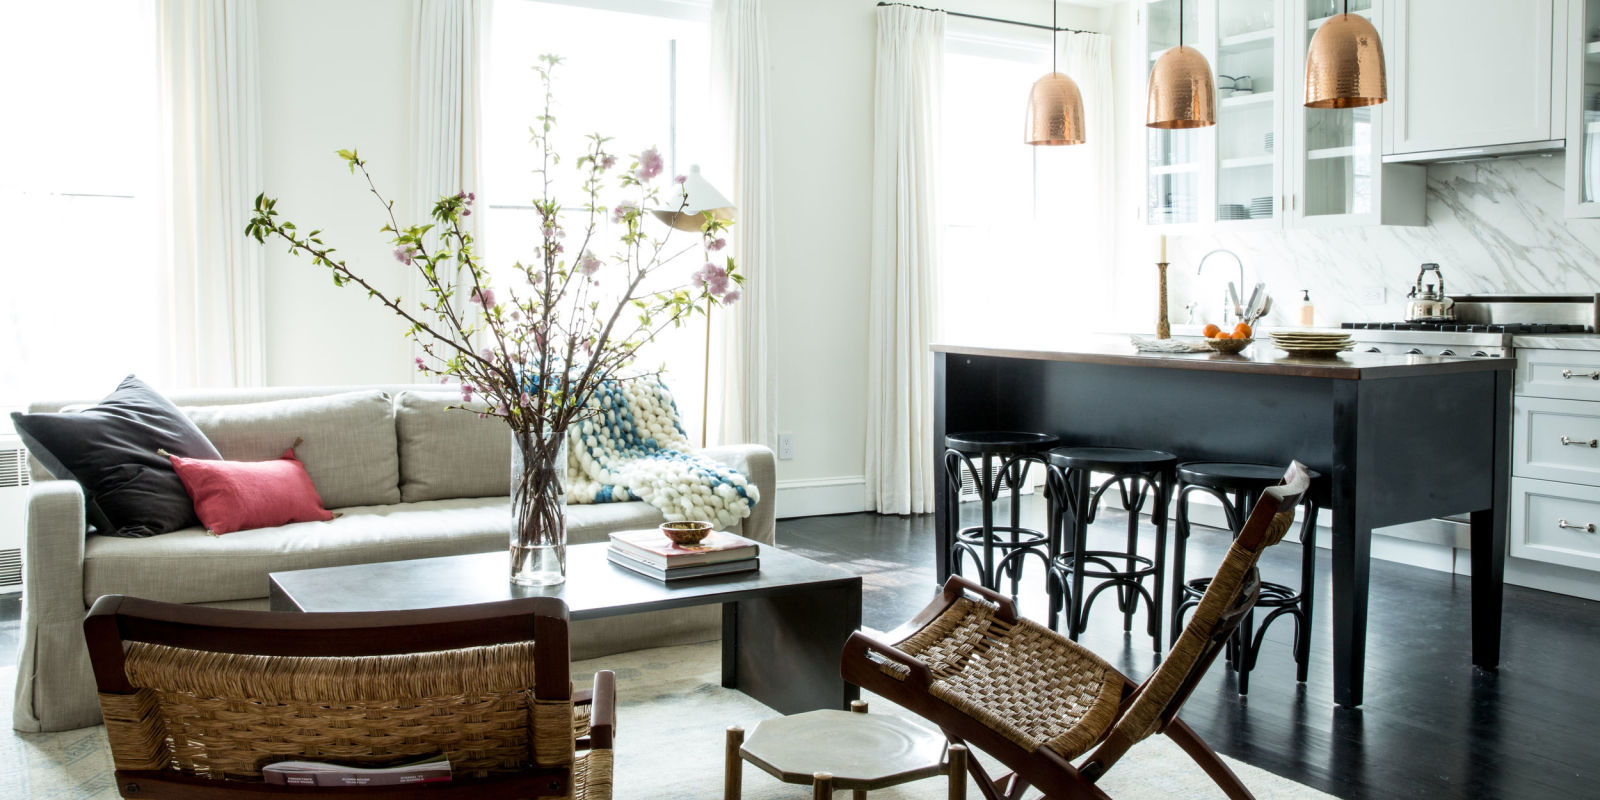 New york city brownstone makeover   modern design in an old house